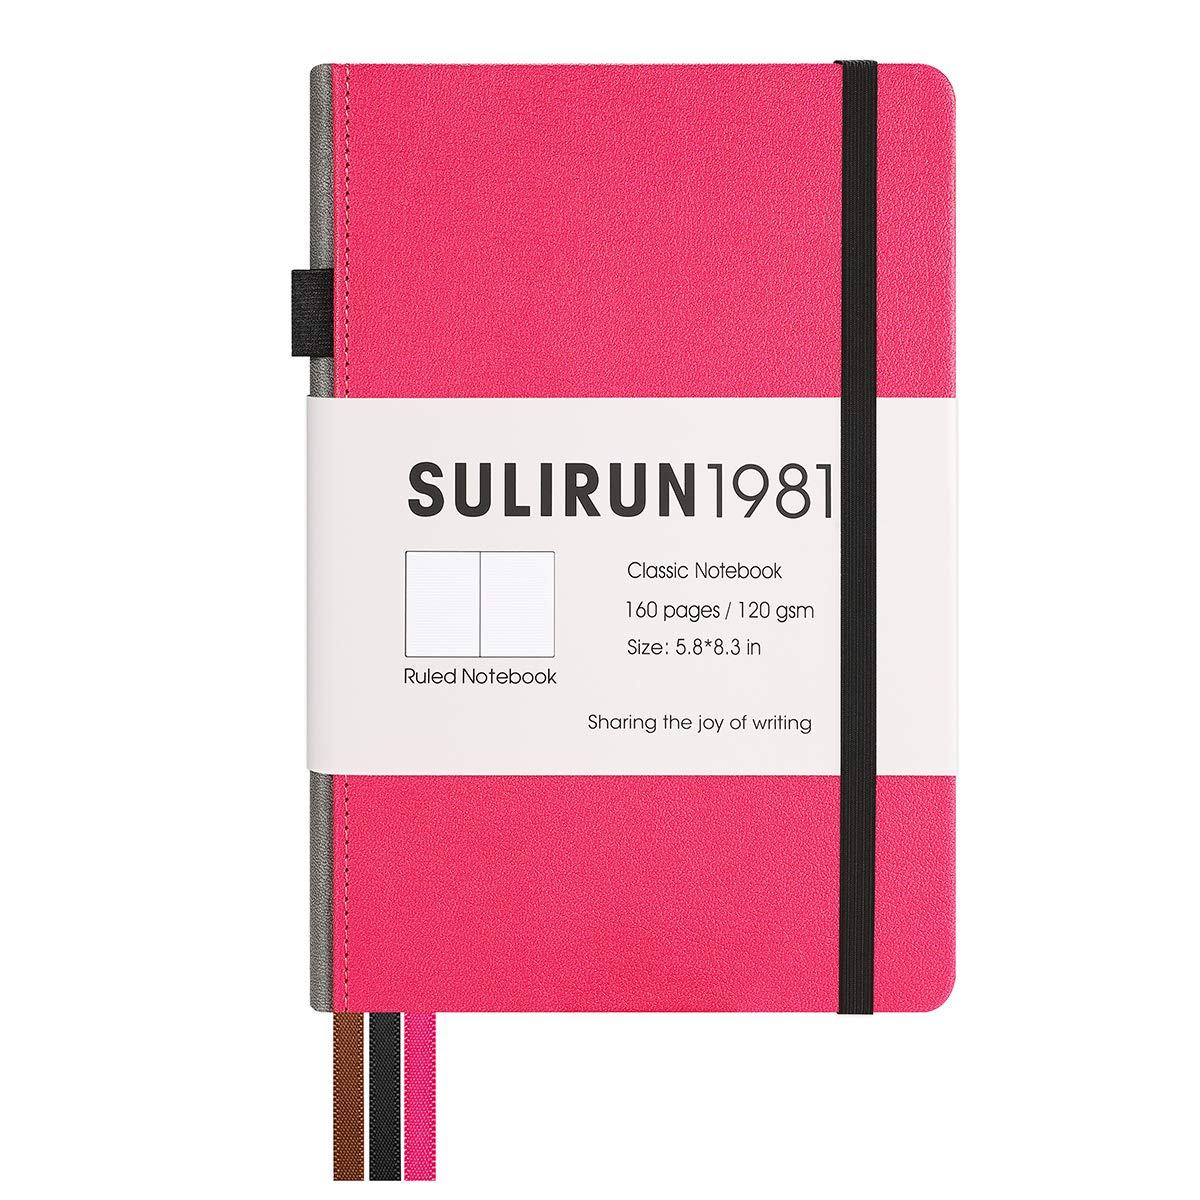 Journal Notebook,PU Leather Cover Notebook for men women student,Pocket journal For School Office work bussiness,5.8 X 8.3 Inches,160 Pages, Thick Paper With Inner Pocket (Rose Red)